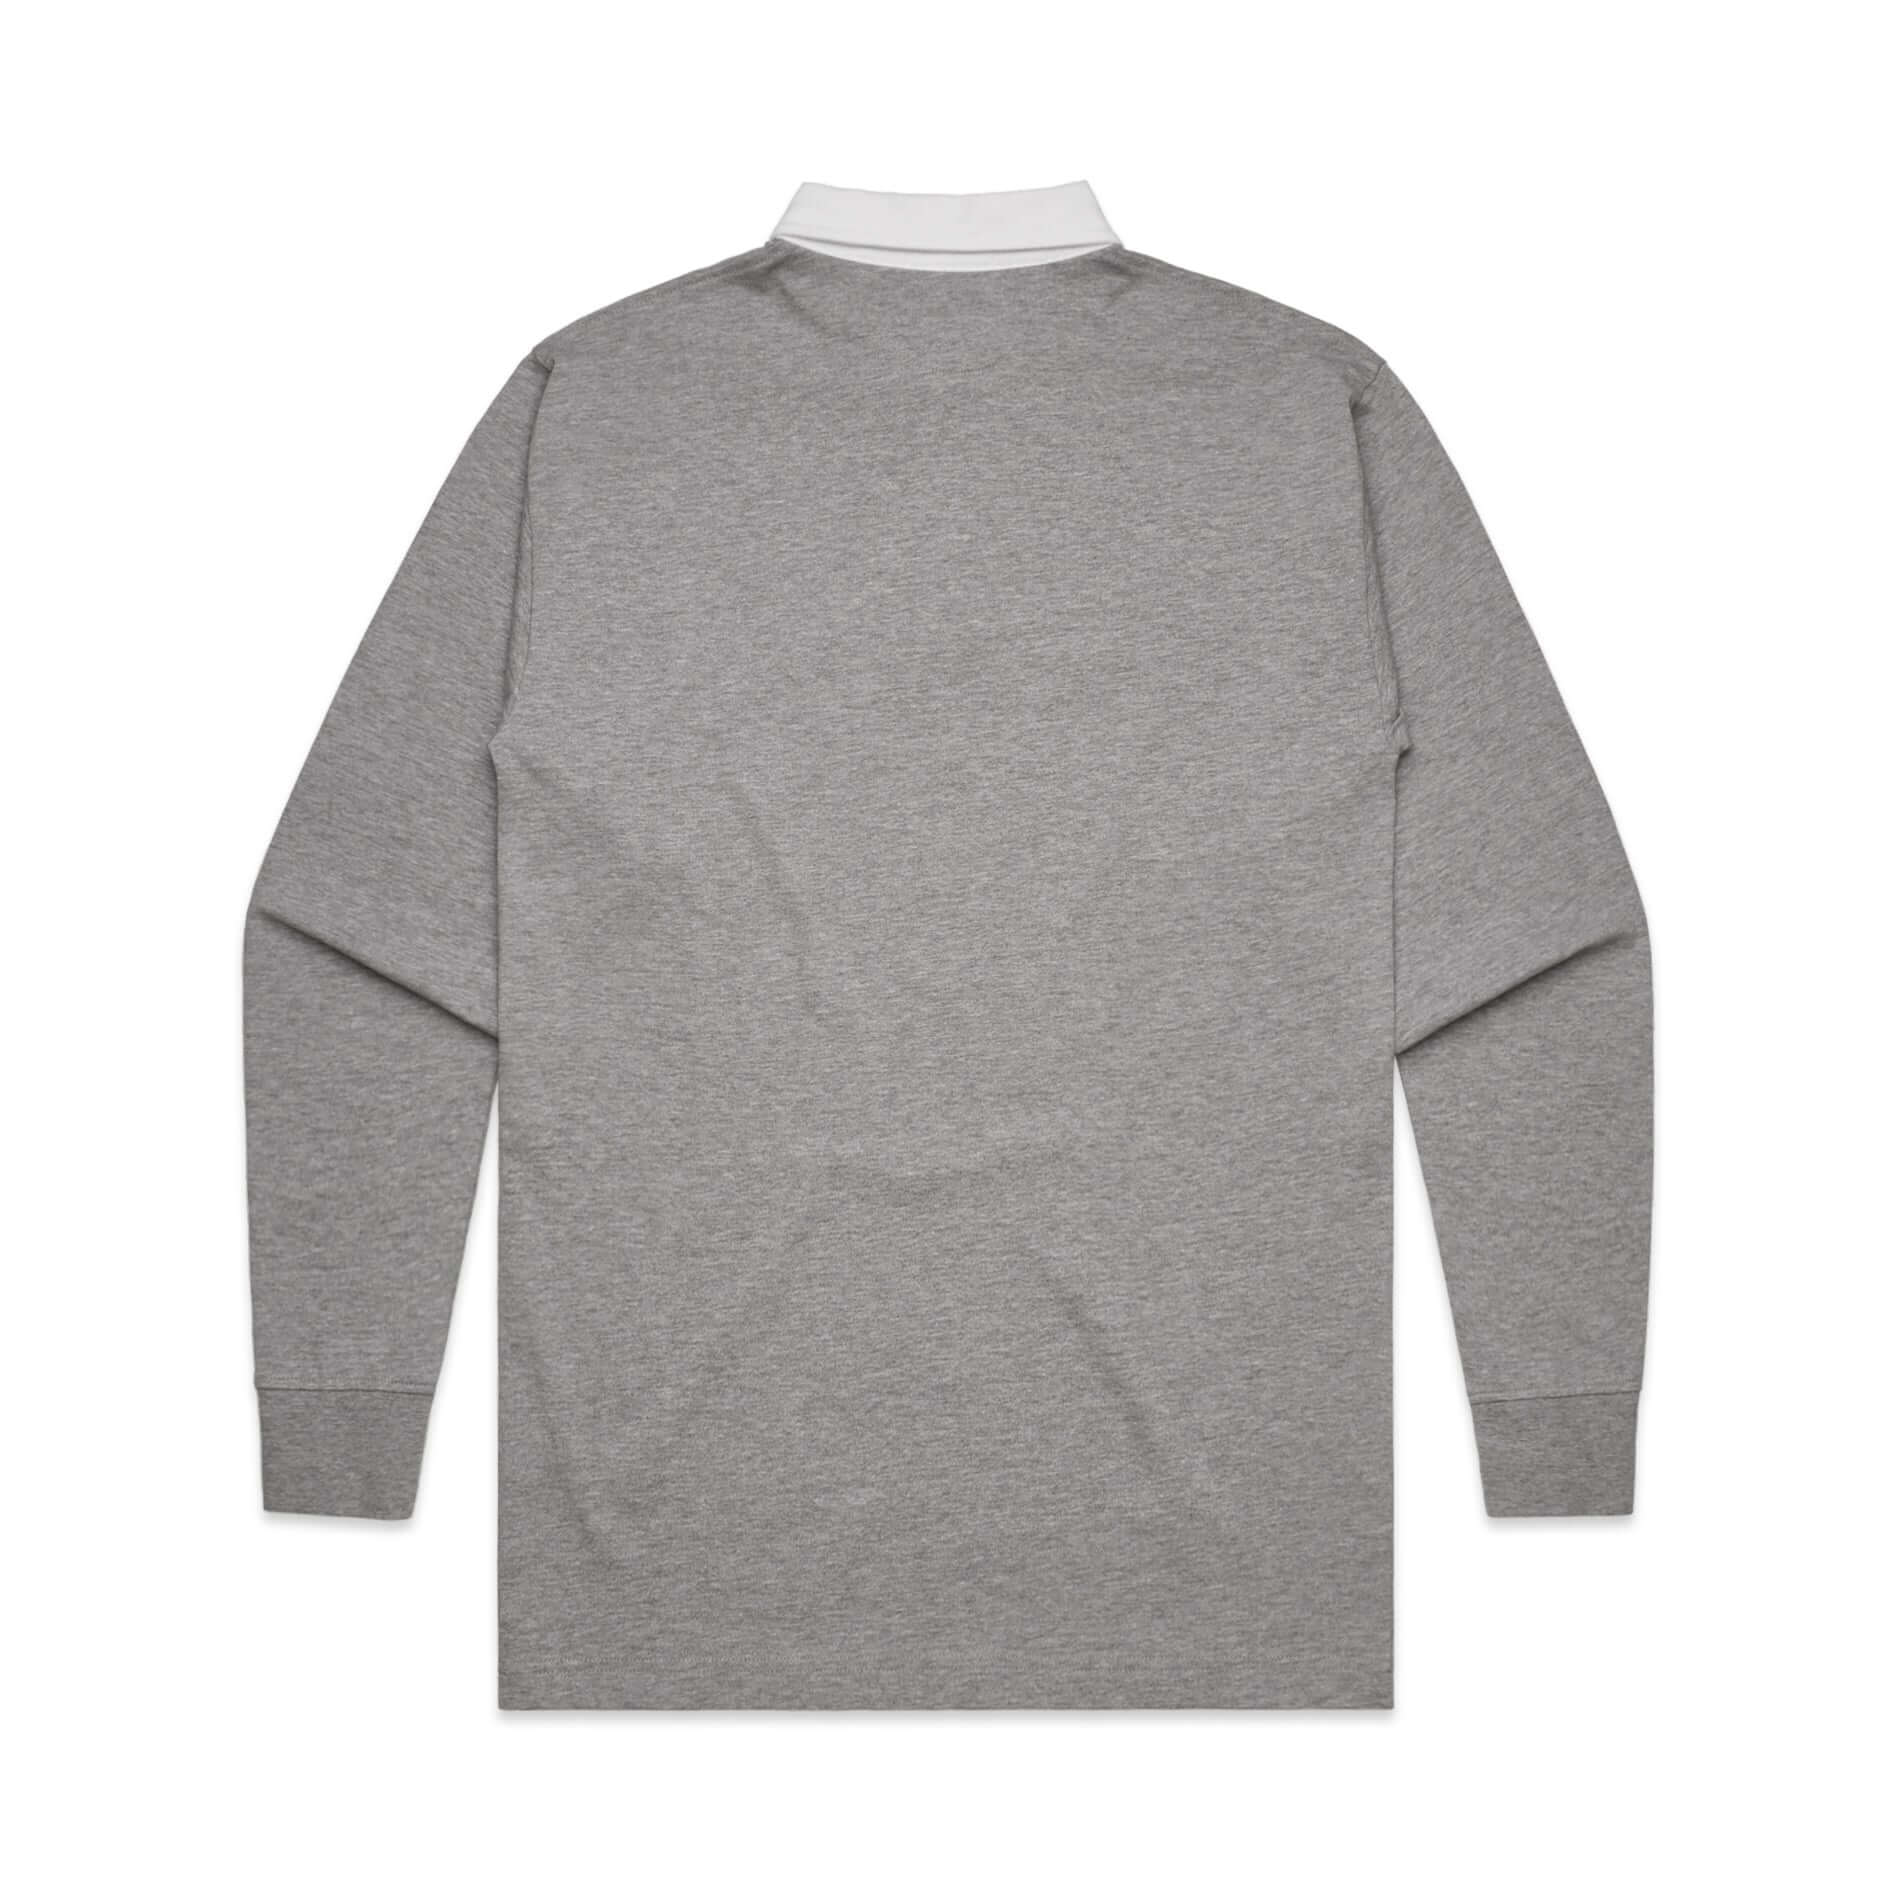 AS Colour RUGBY JERSEY - Grey Marle